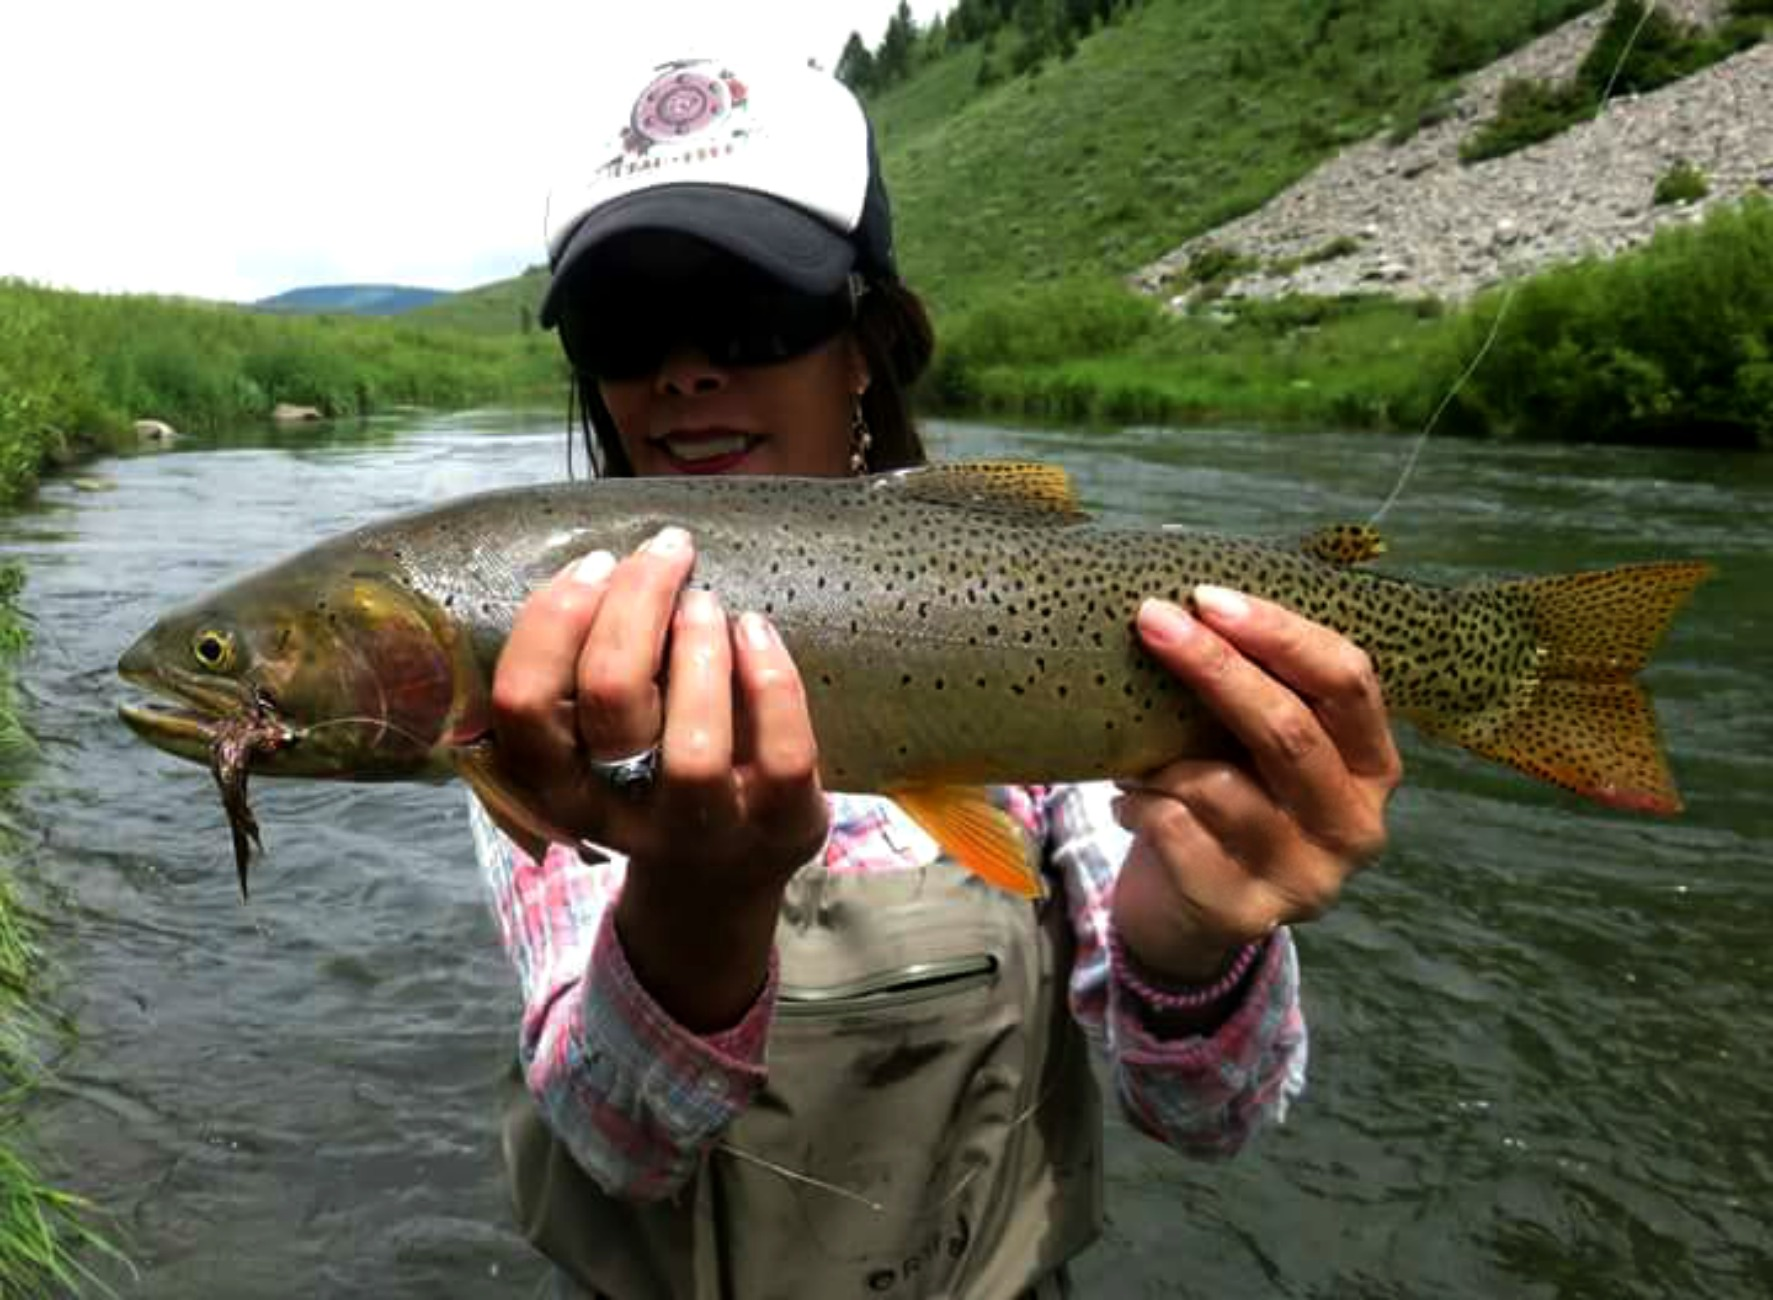 Verlicia (Lisa) Perez  As a mother of 4 and grandmother to 4, I am a true believer in exposing children to the true essence of nature and all that it entails. Fly fishing has been such a beautifully healing experience for me; one that I cannot wait to share with my mentees. To allow them to experience all that is fly fishing....beautiful loops of colored line passing above pristine waters; anglers hip deep in a mountain stream while clouds of caddis flutter in the adjoining bushes; or a thick shouldered cutthroat held half out of the water while a smiling angler reaches down to unpin a perfectly chosen streamer from its lower jaw, is what I look forward to experiencing with our foster kids and fellow mentors alike.    I believe each angler's fly fishing journey takes on a form of spirituality. I believe everyone has a right to take their spiritual journey in the manner they see fit. Be it in a library studying the teachings of a philosopher, on a mountain top in Tibet learning from a master, or on the sides of a river in Utah learning from nature, the choice is an individual one. For me, I think I prefer to attend the church of the Logan, Blackfoot or the Salmon. With luck, someday I will become a true angler, and not just a fish catcher.